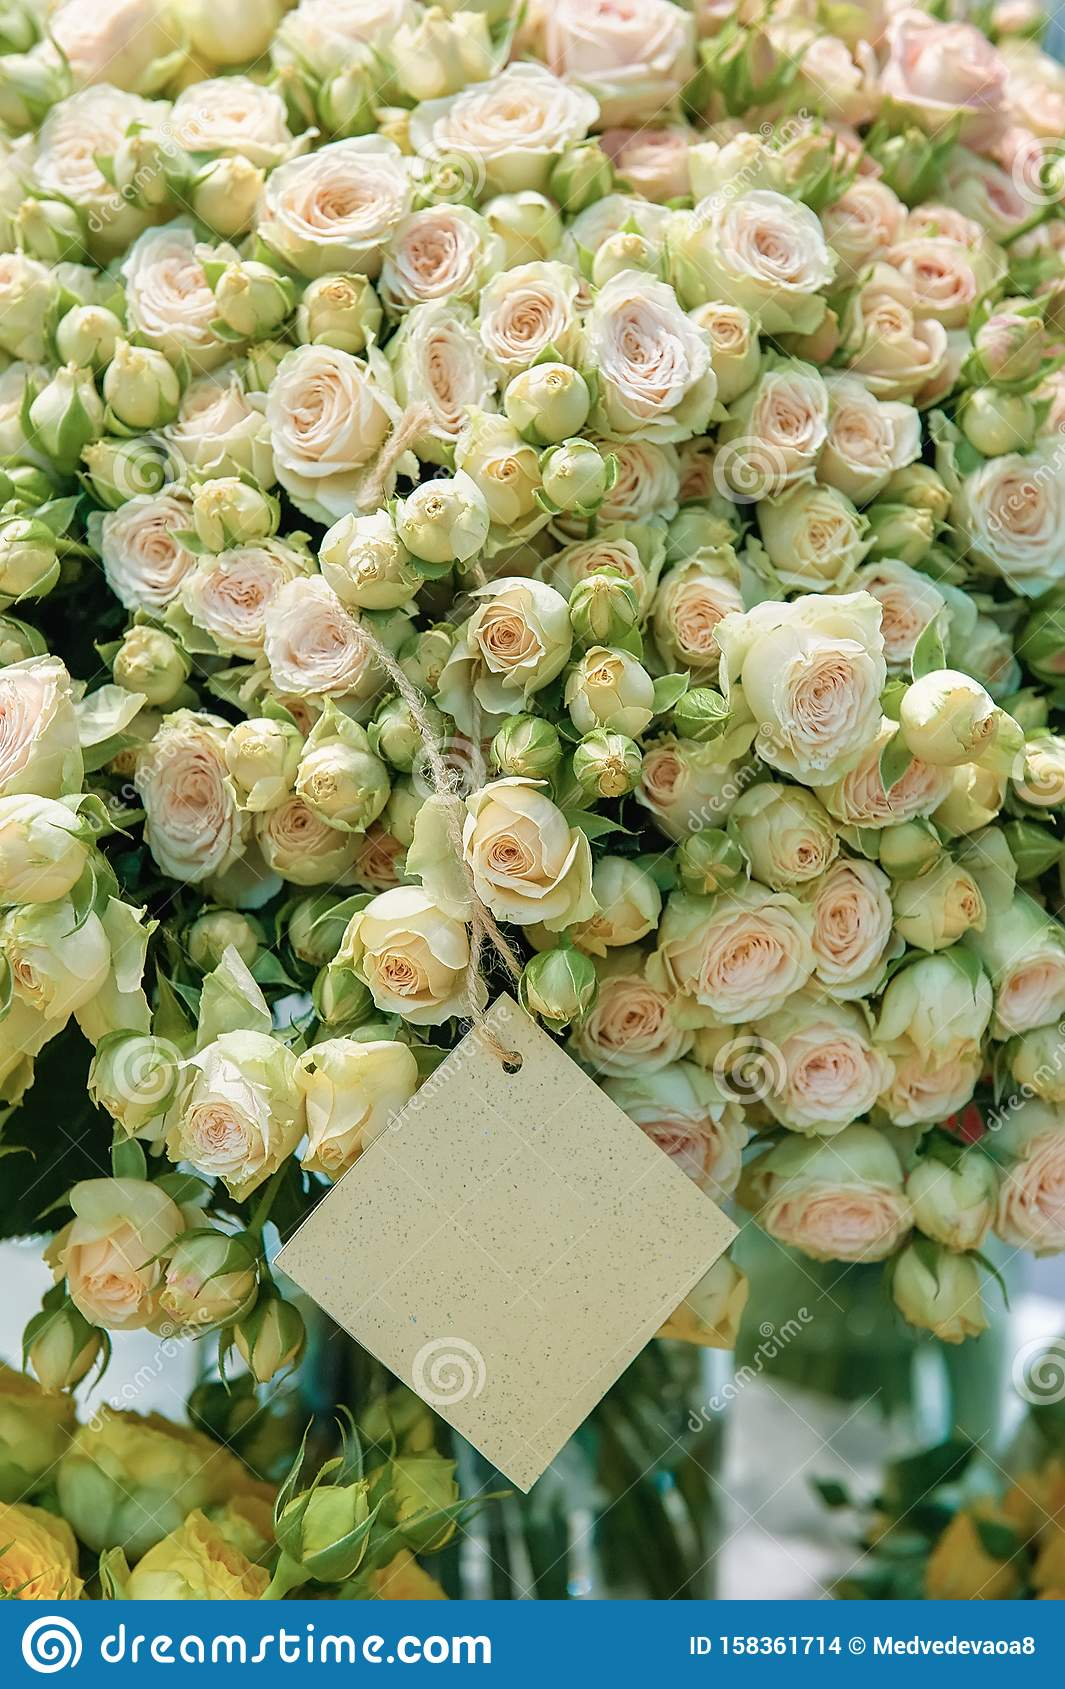 Roses Of Pink Salmon And Mint Green Flowers Of Modern Varieties In A Bouquet For A Gift Background Selective Focus Wallpaper Stock Photo Image Of Gift Petal 158361714